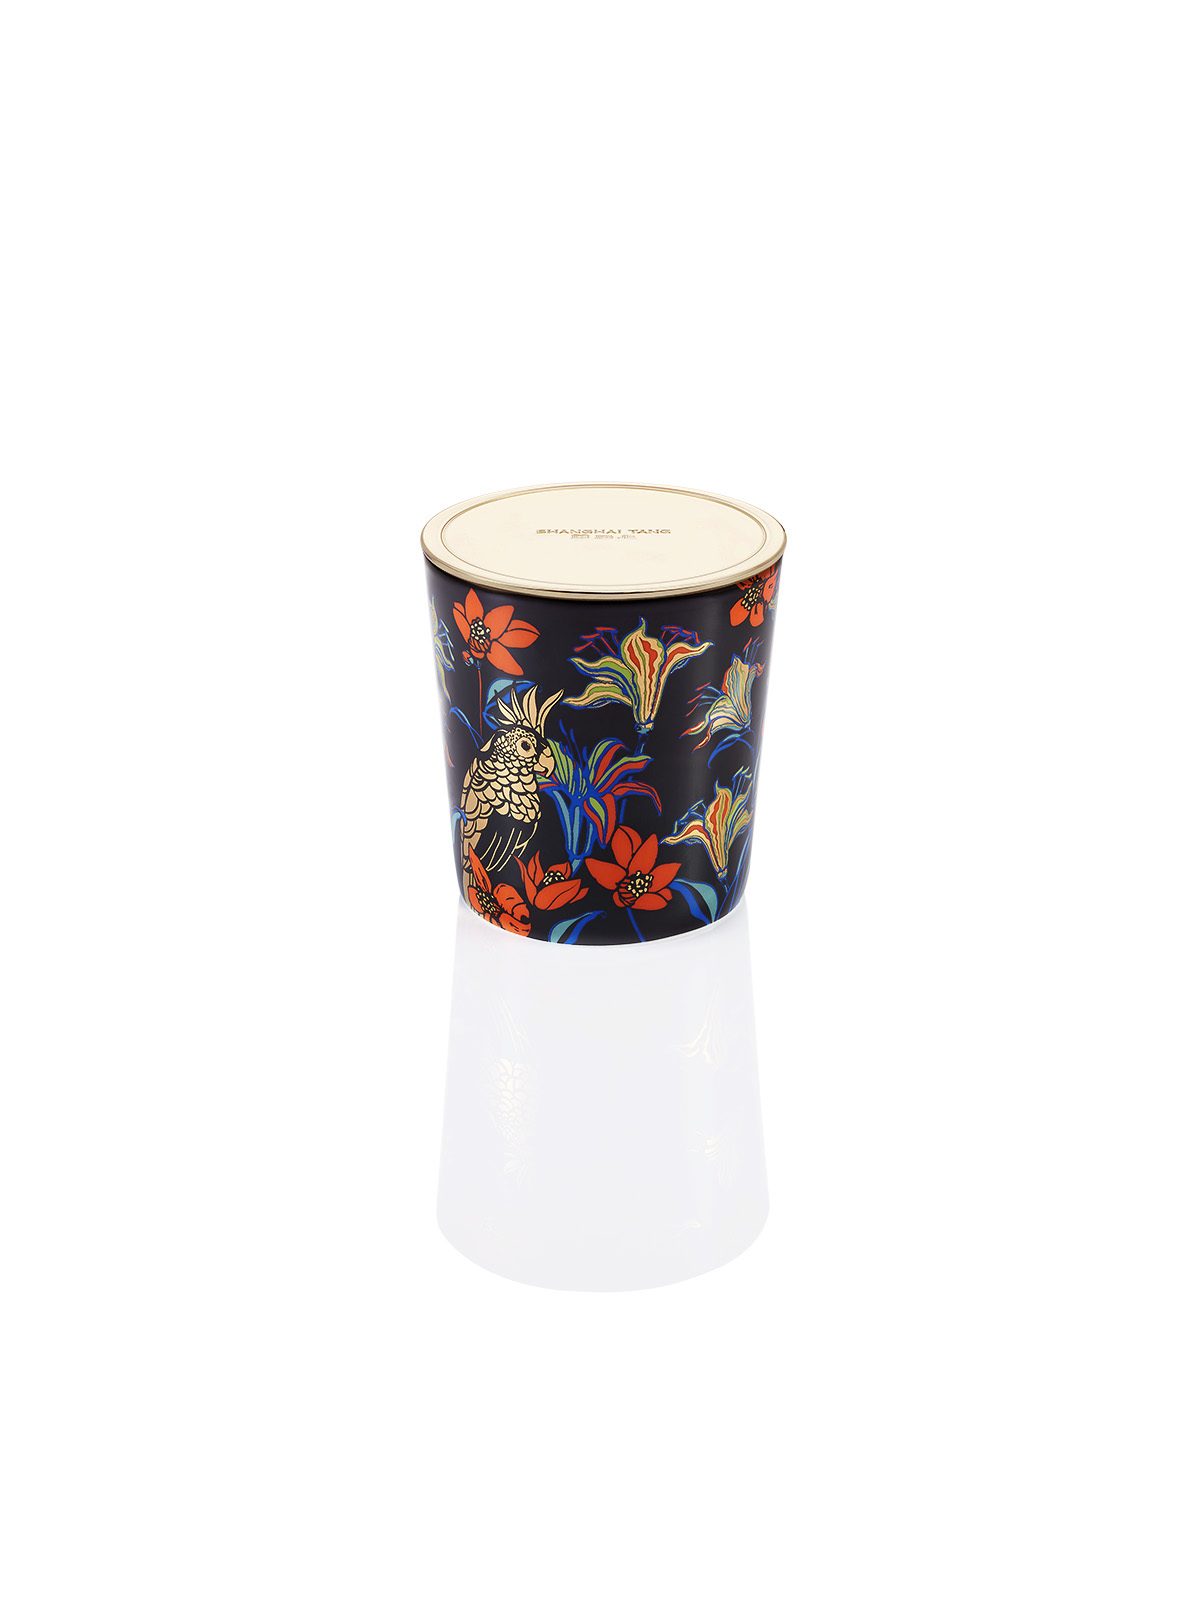 Forbidden Garden Bone China Scented Candle – Enchant